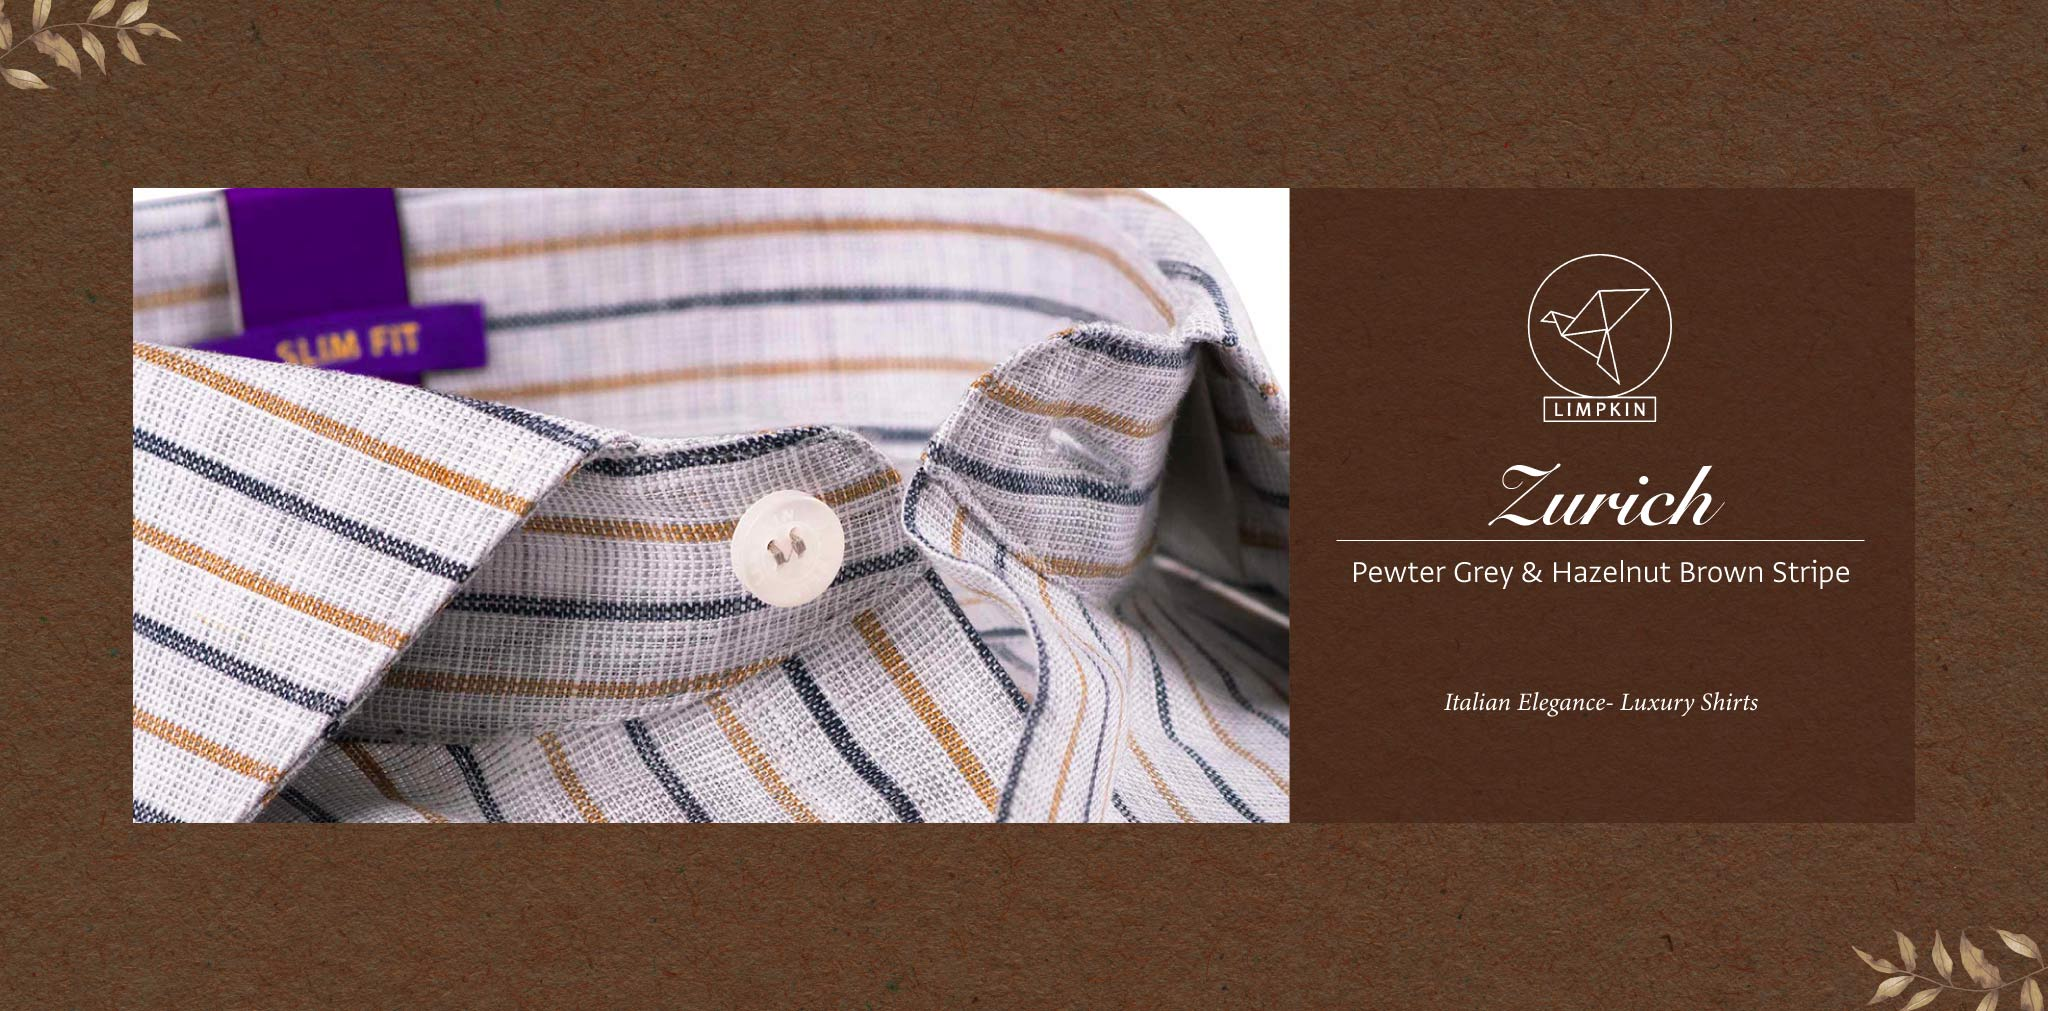 Zurich- Pewter Grey & Hazelnut Brown Stripe- 66's Lea Pure Luxury Linen- Delivery from 26th Sept - Banner